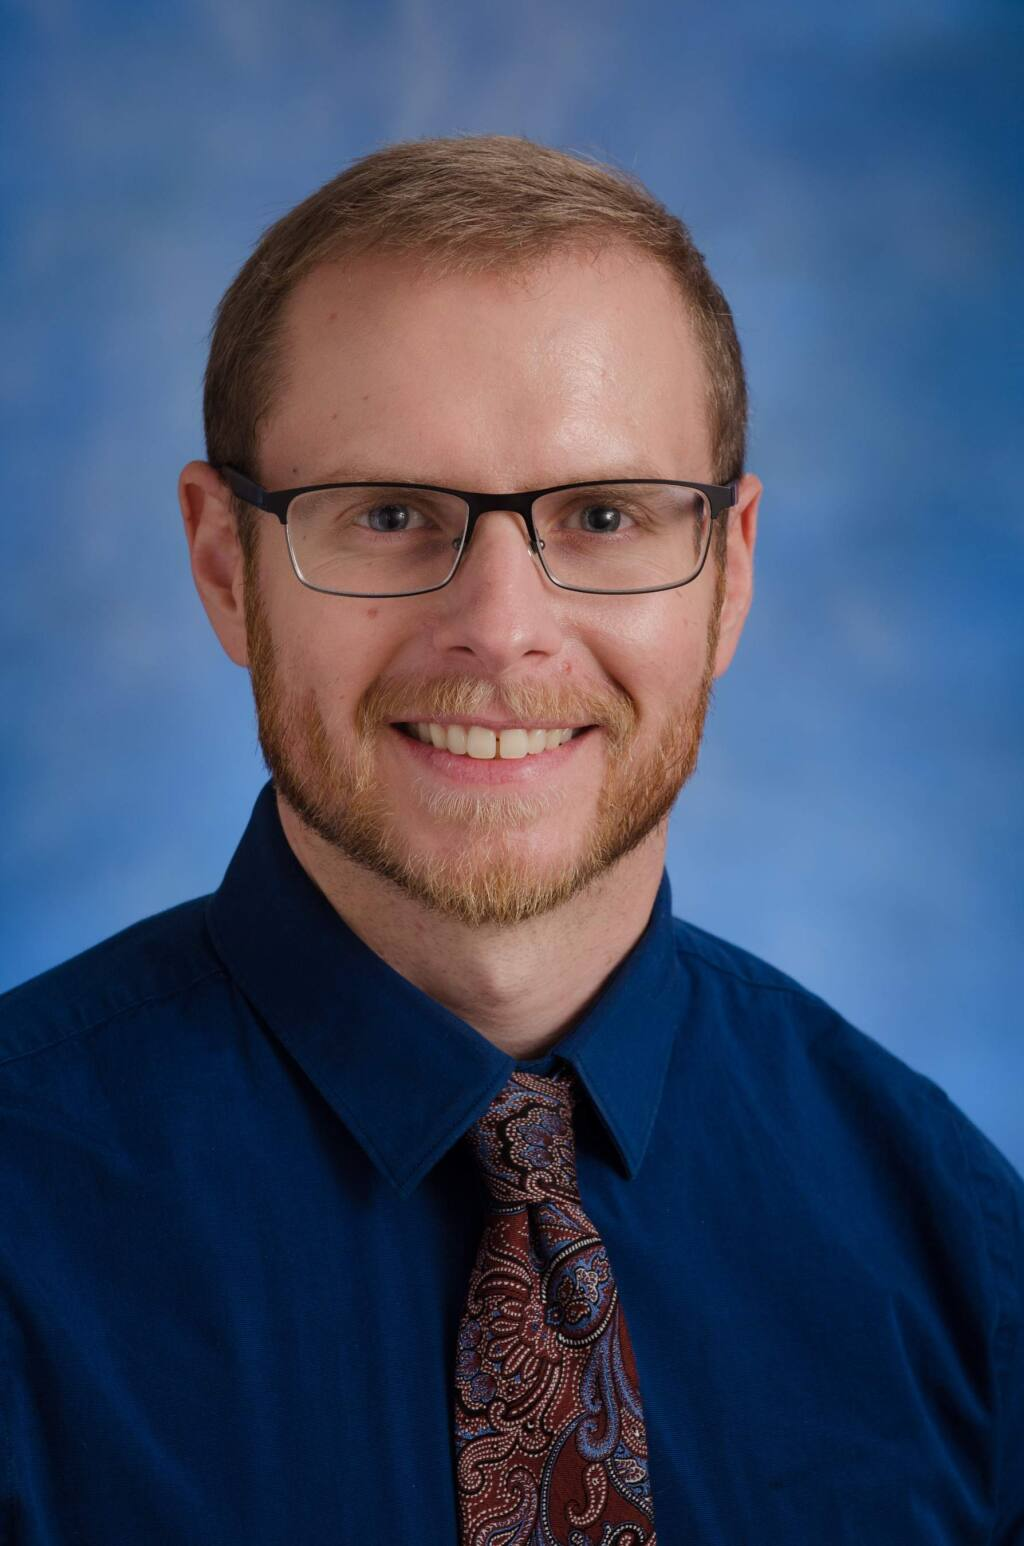 Derek Hansel, 32, supply chain manager for Kaiser Permanente in San Rafael, is one of North Bay Business Journal's Forty Under 40 notable young professionals for 2019. (PROVIDED PHOTO)